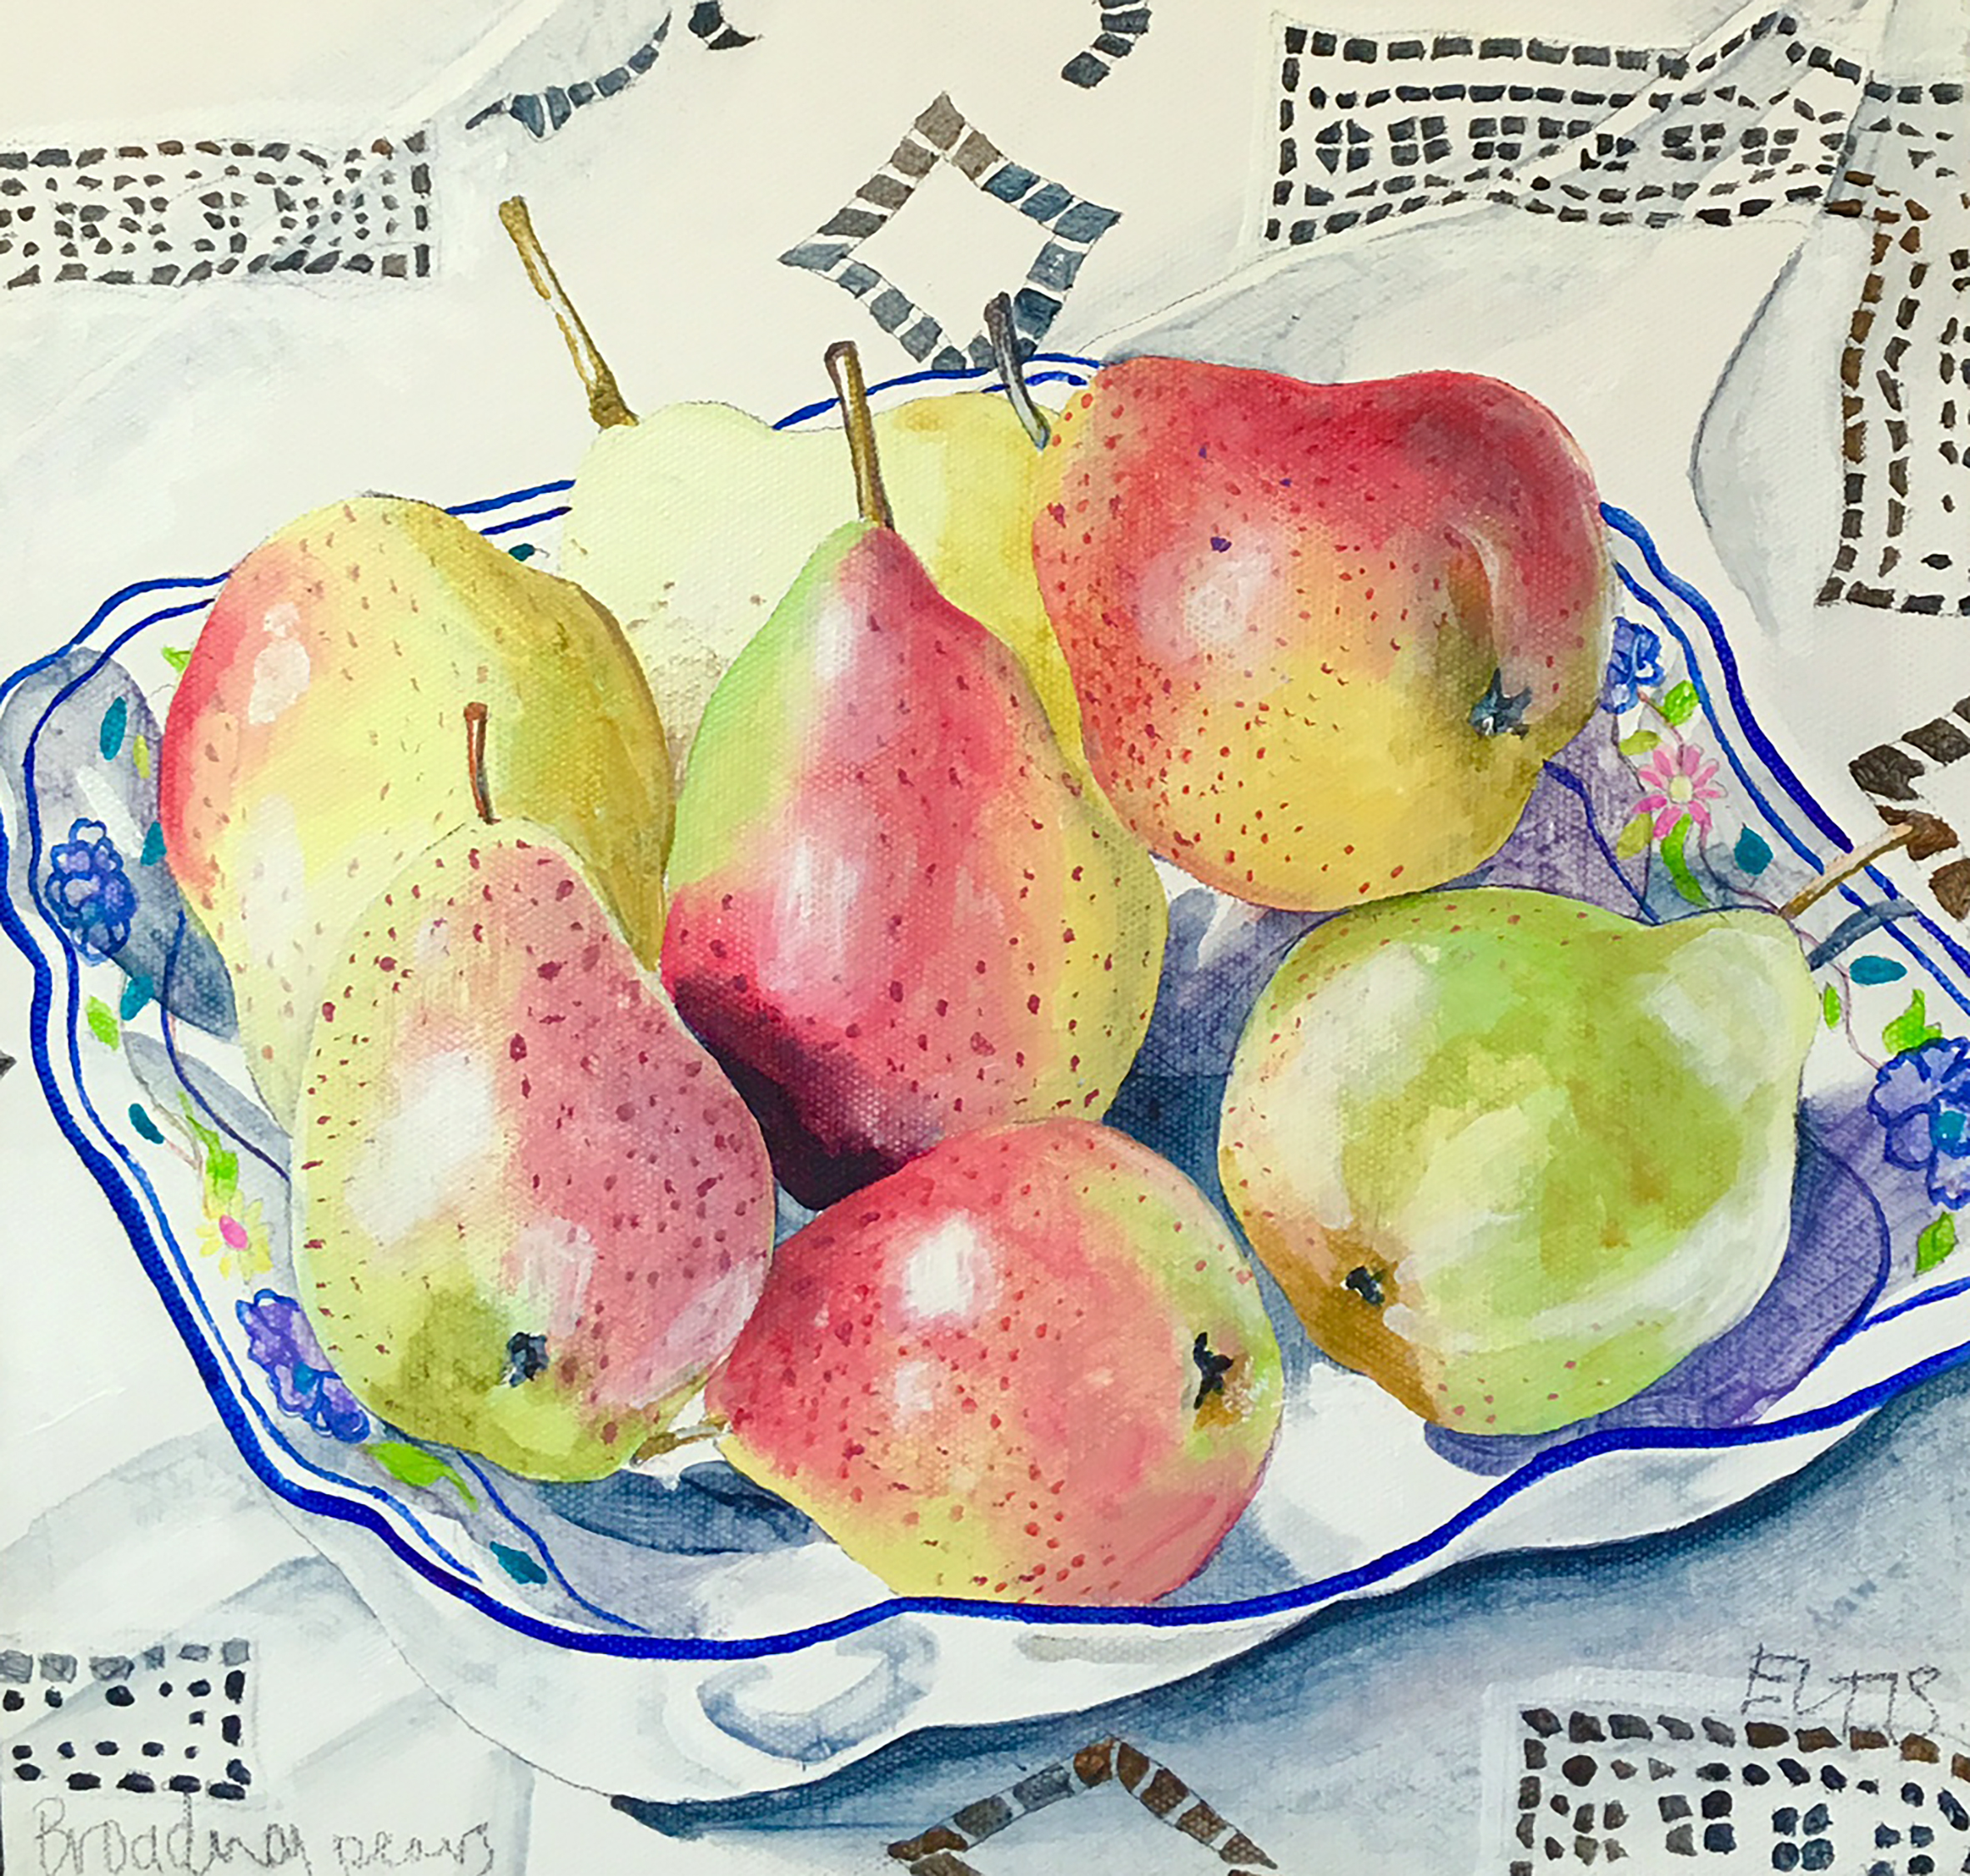 Broadway Pears